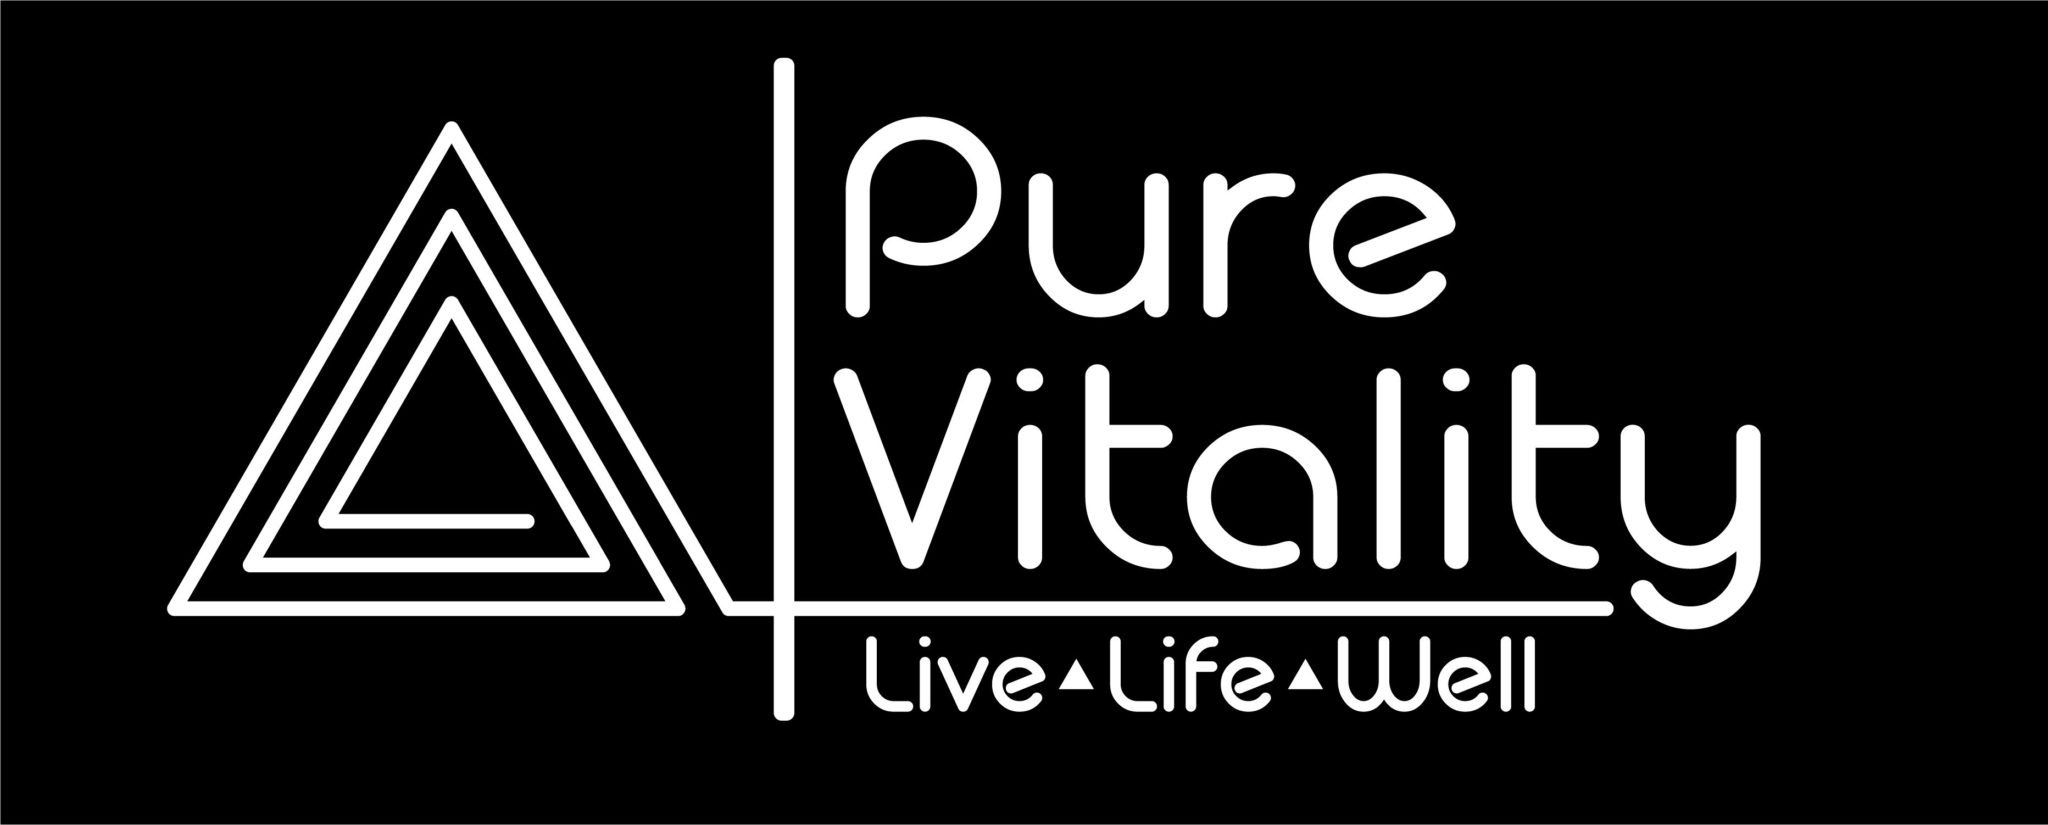 PURE VITALITY - Juice Bar & Spa of Mt. Pleasant, MI offers float pods, infrared massages & infrared saunas. Our juice bar's juices & smoothies are made fresh.